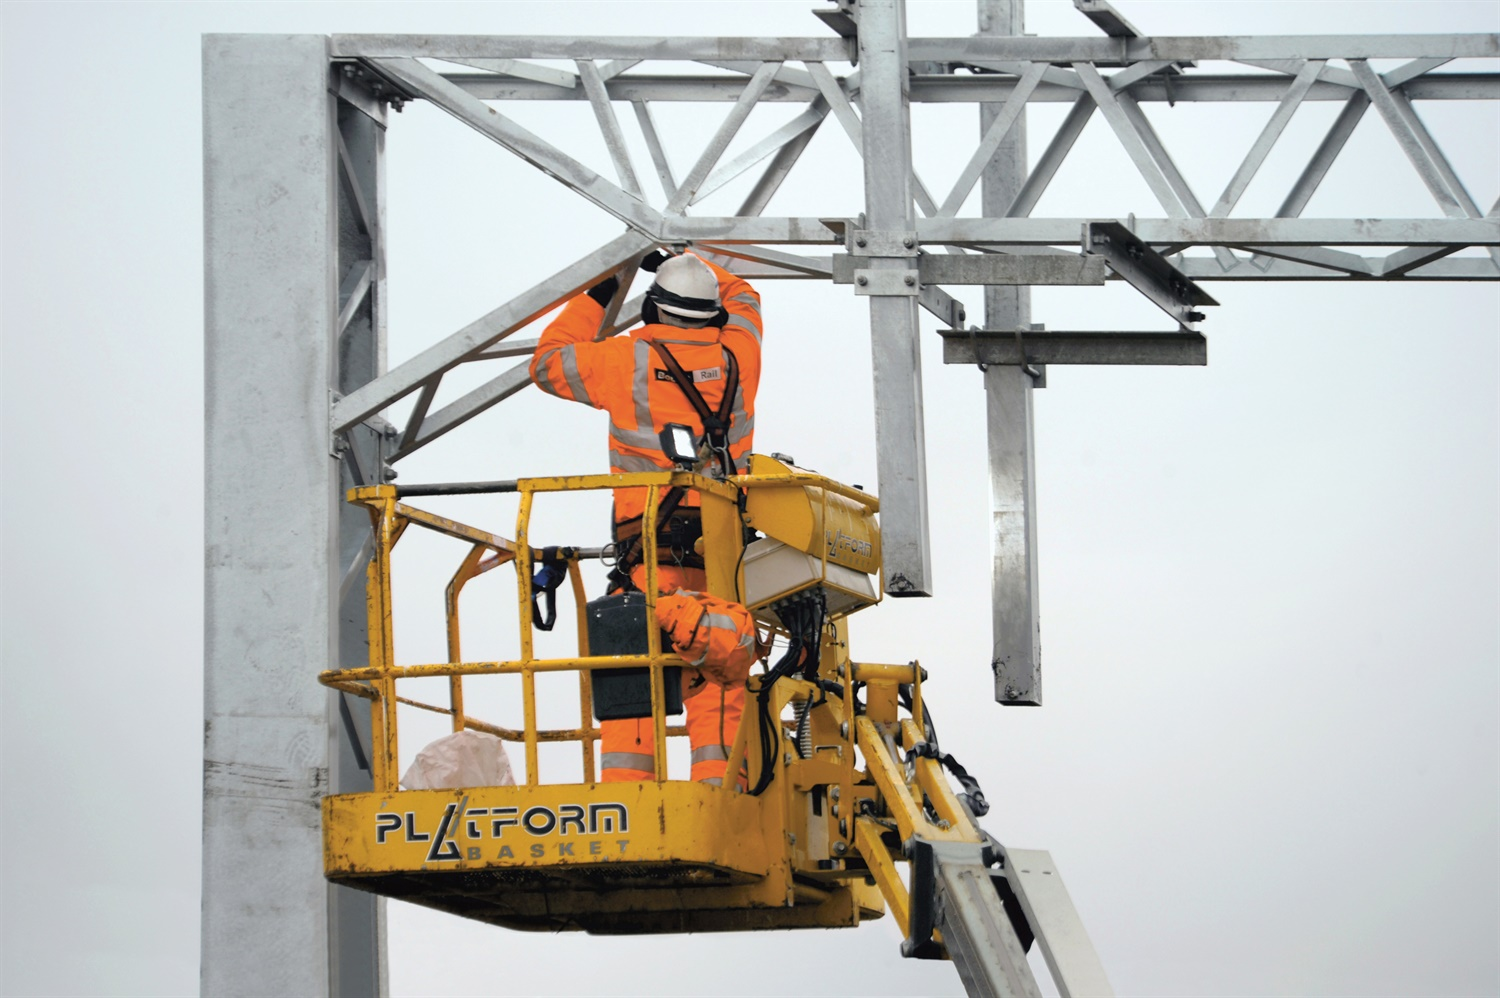 Delivering cost-effective electrification